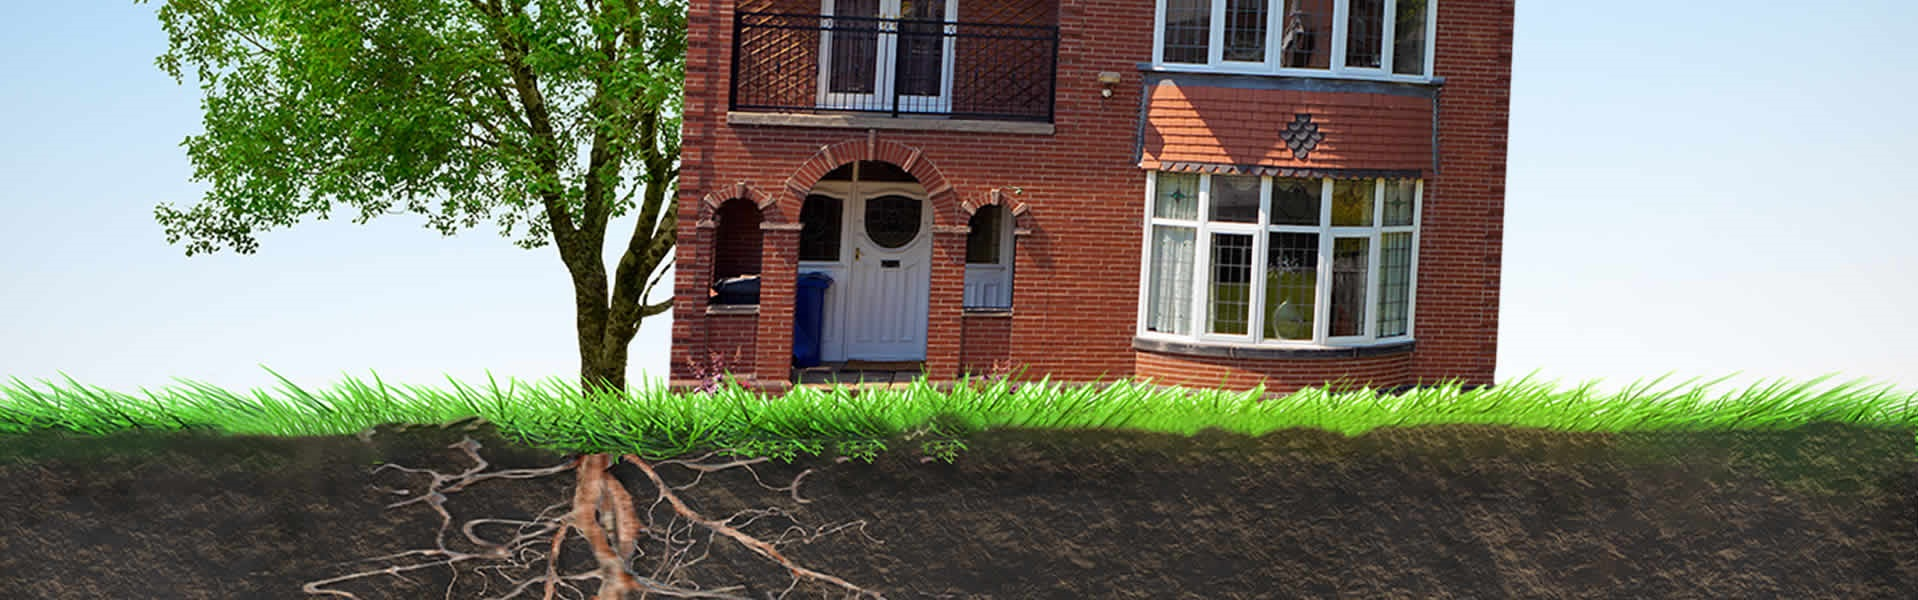 SUBSIDENCE DAMAGE REPAIR BY KIRK CONTRACTS